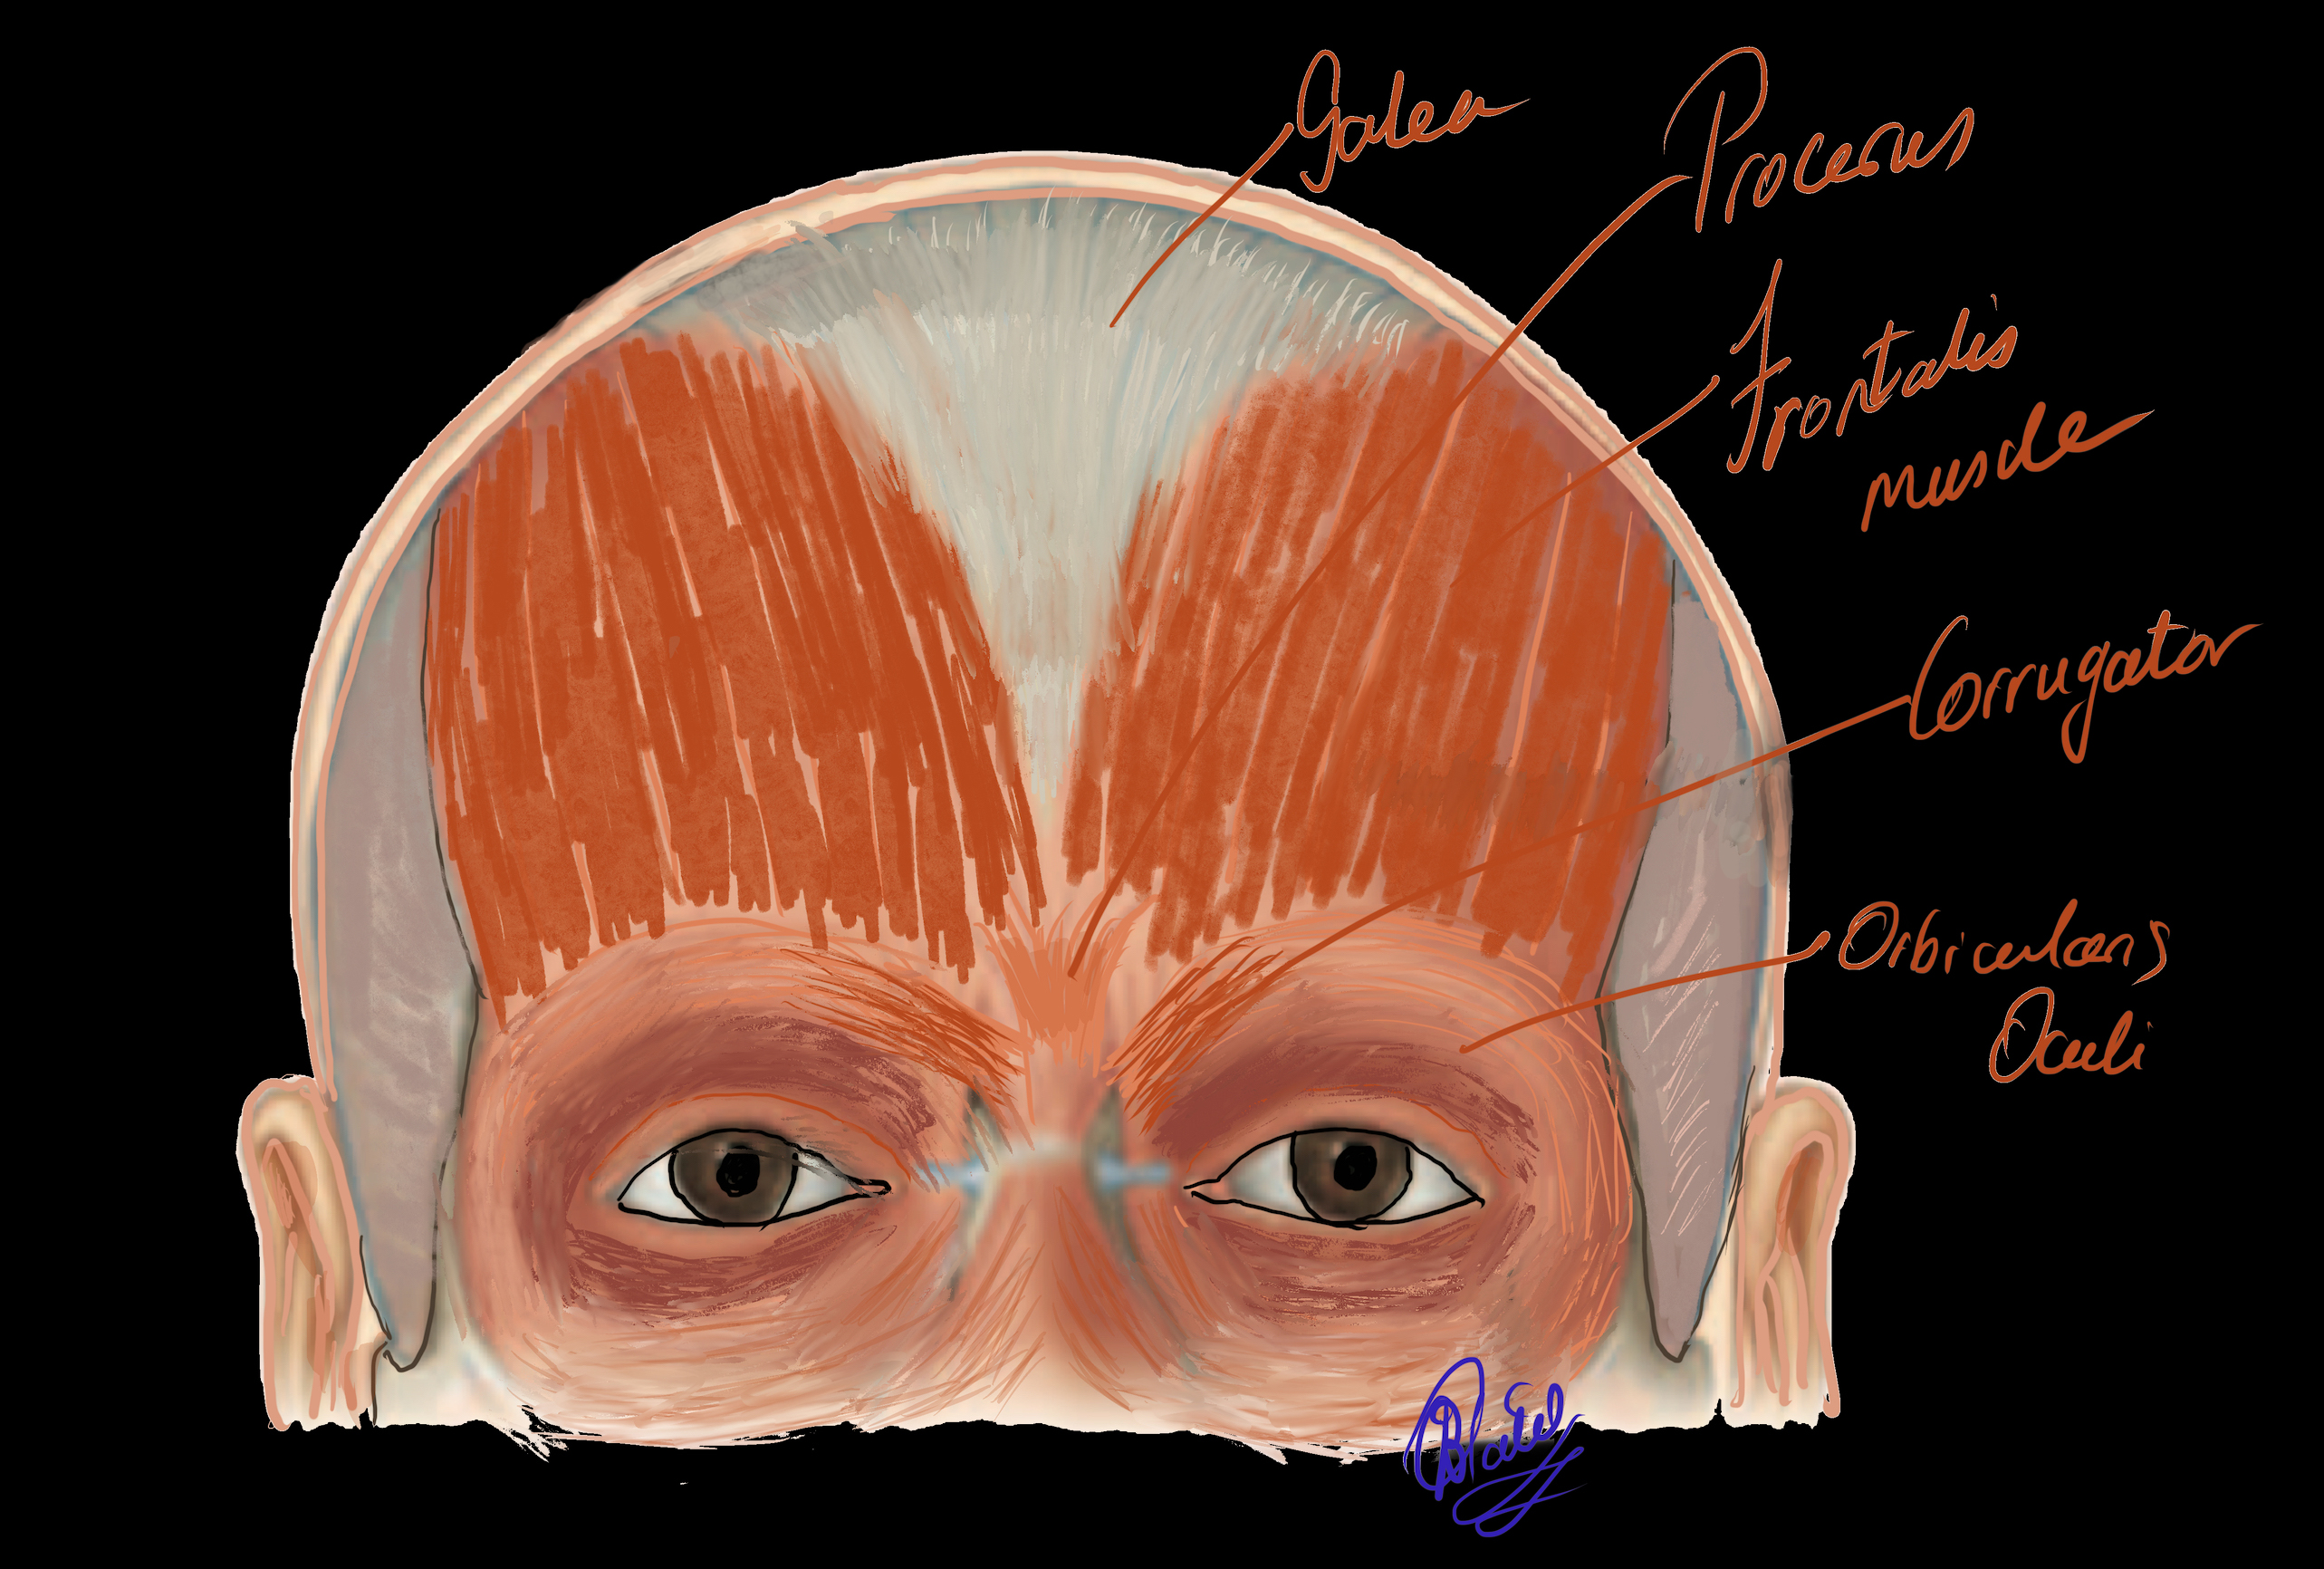 The Fronatlis Muscle which is the only elevator of the brow. The procerus, corrugator and orbicularis oculi muscles are the depressors